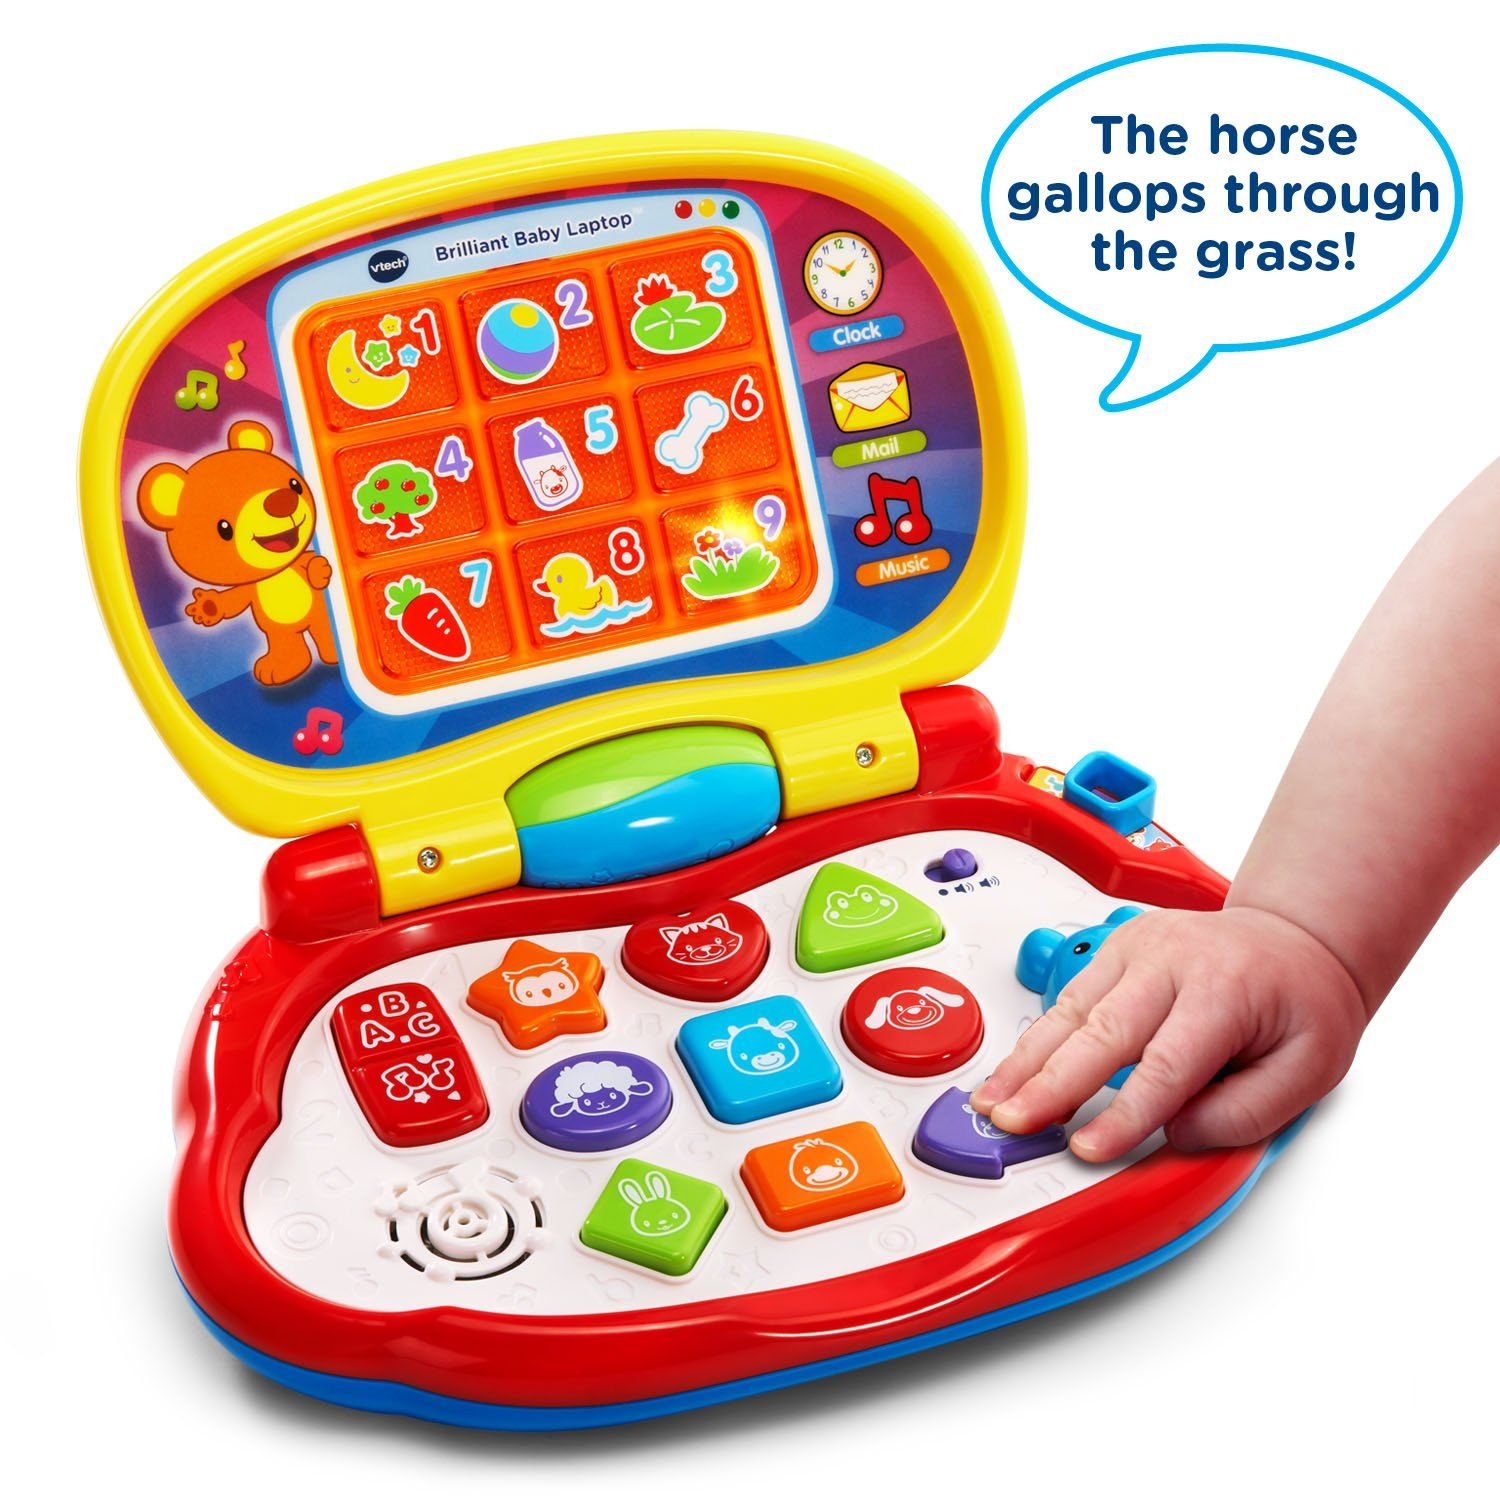 Brilliant Baby Laptop Explore And Learn With The Brilliant Baby